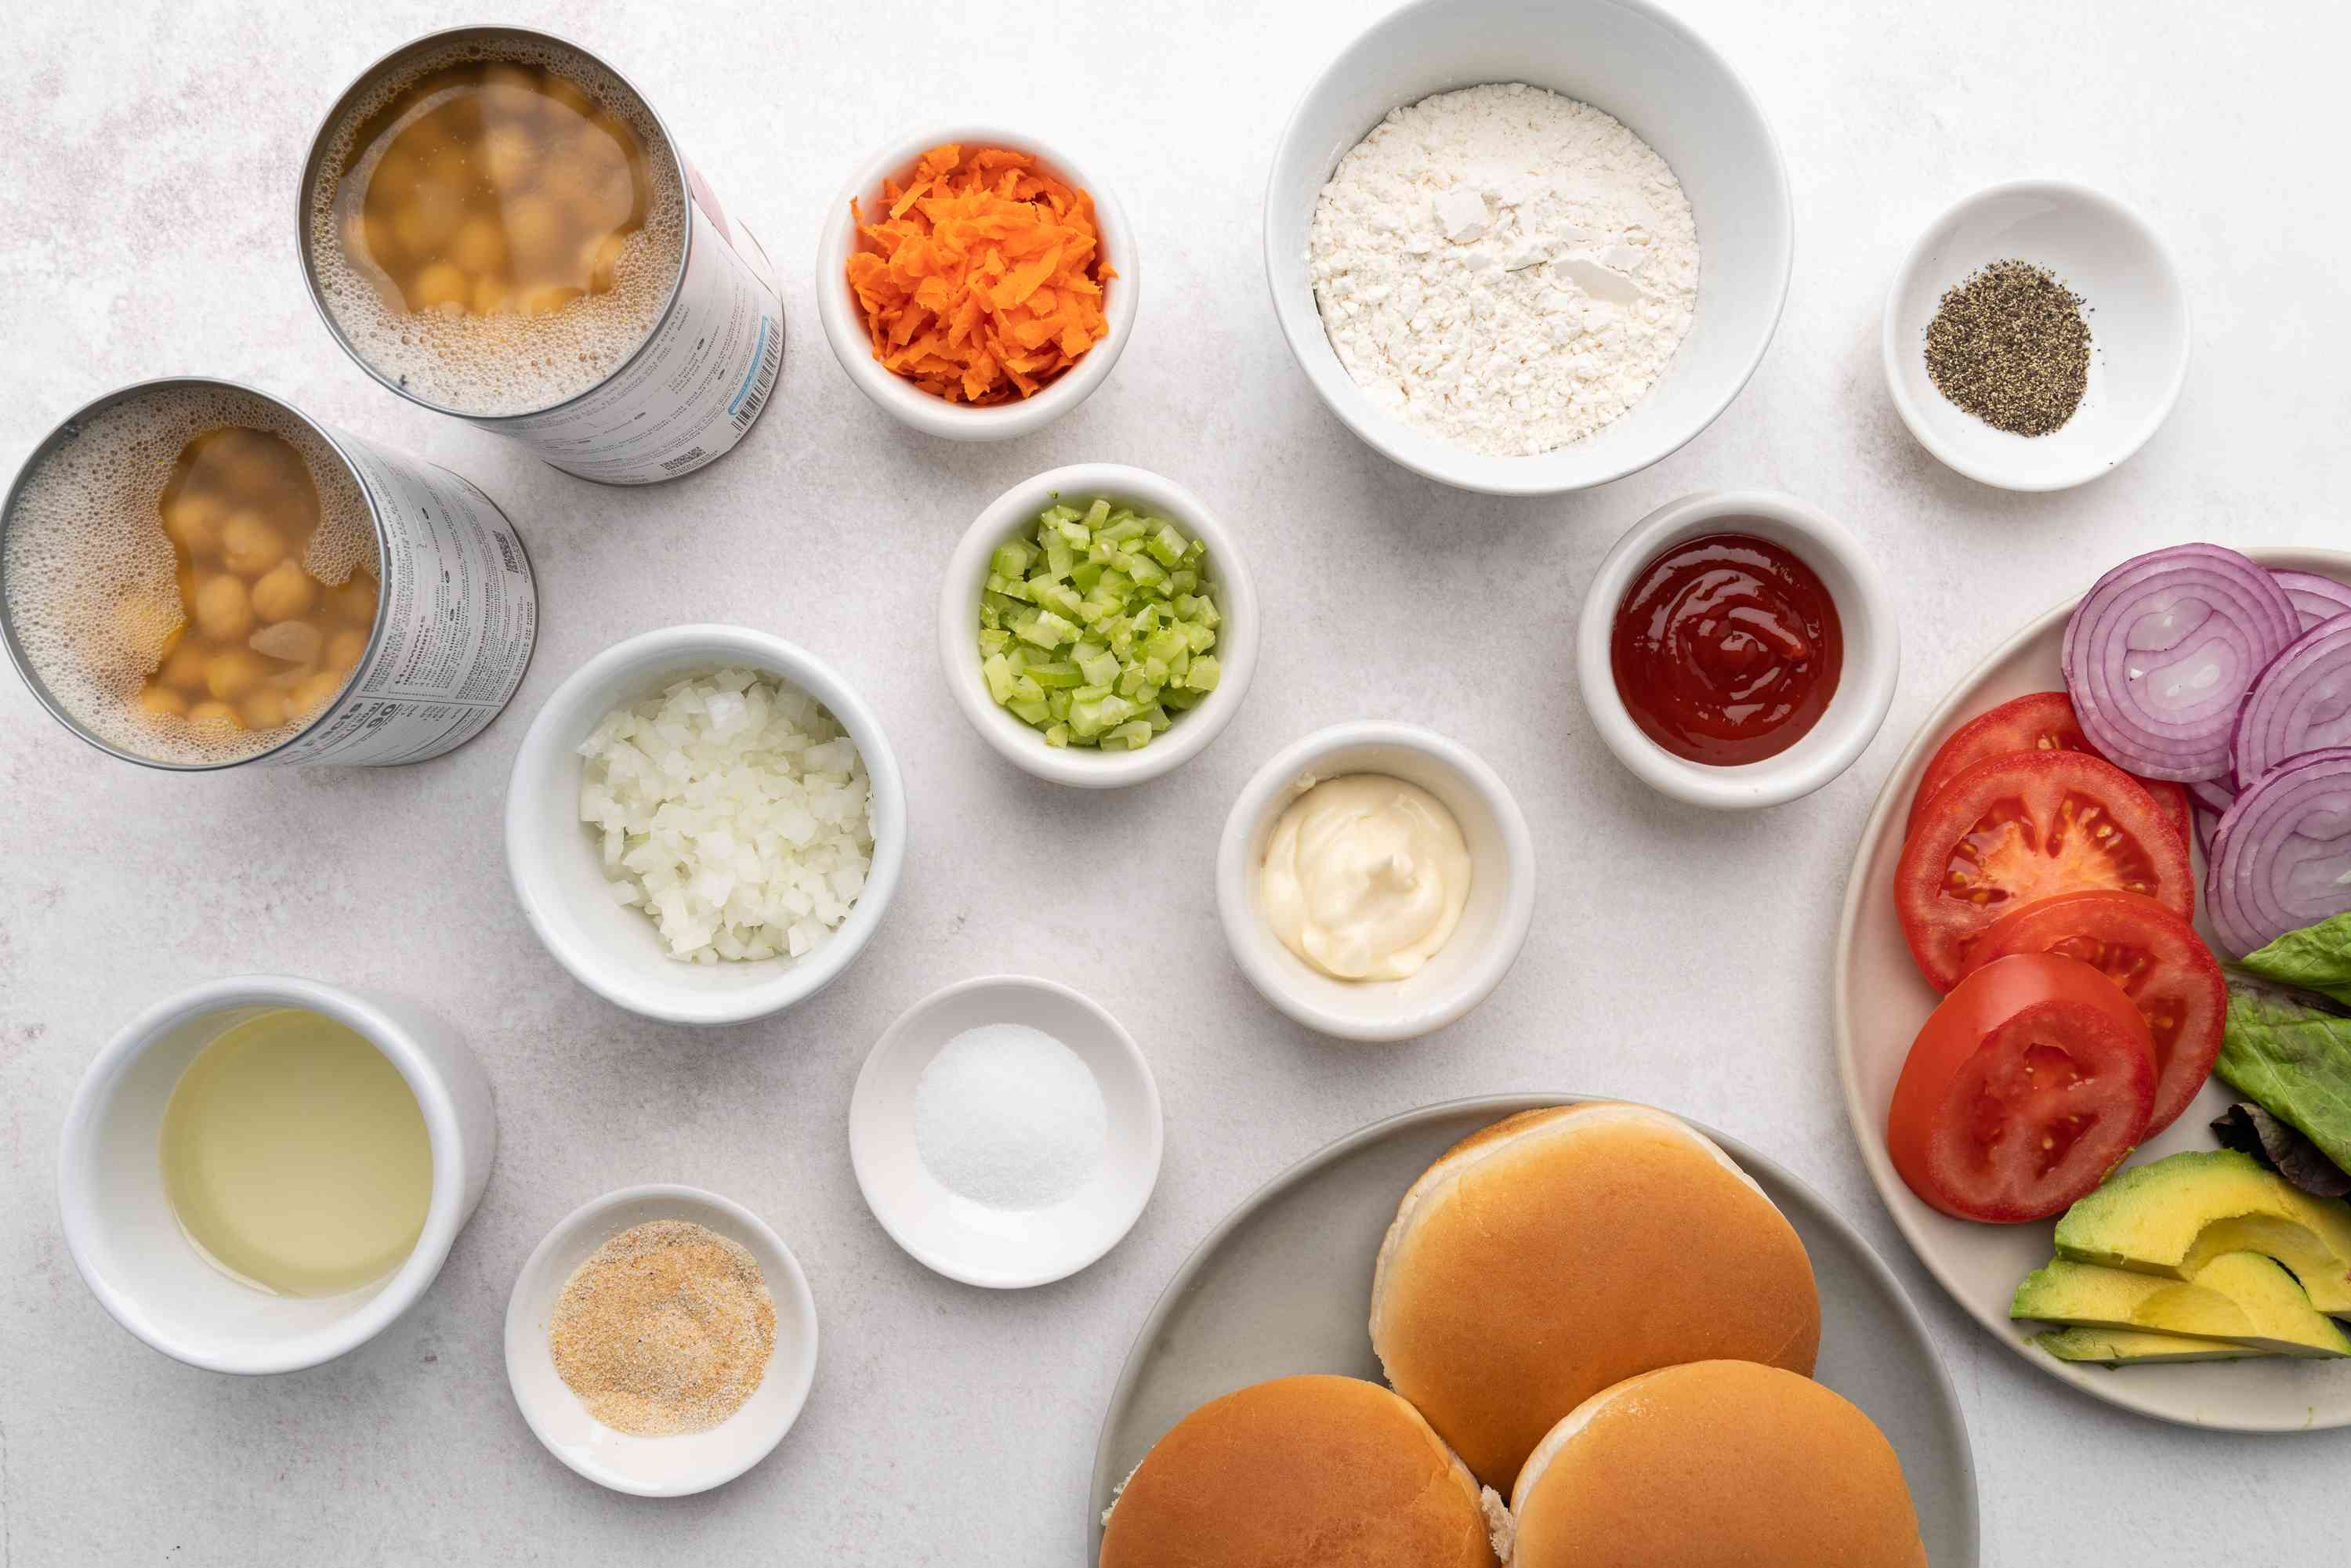 Ingredients for chickpea burger